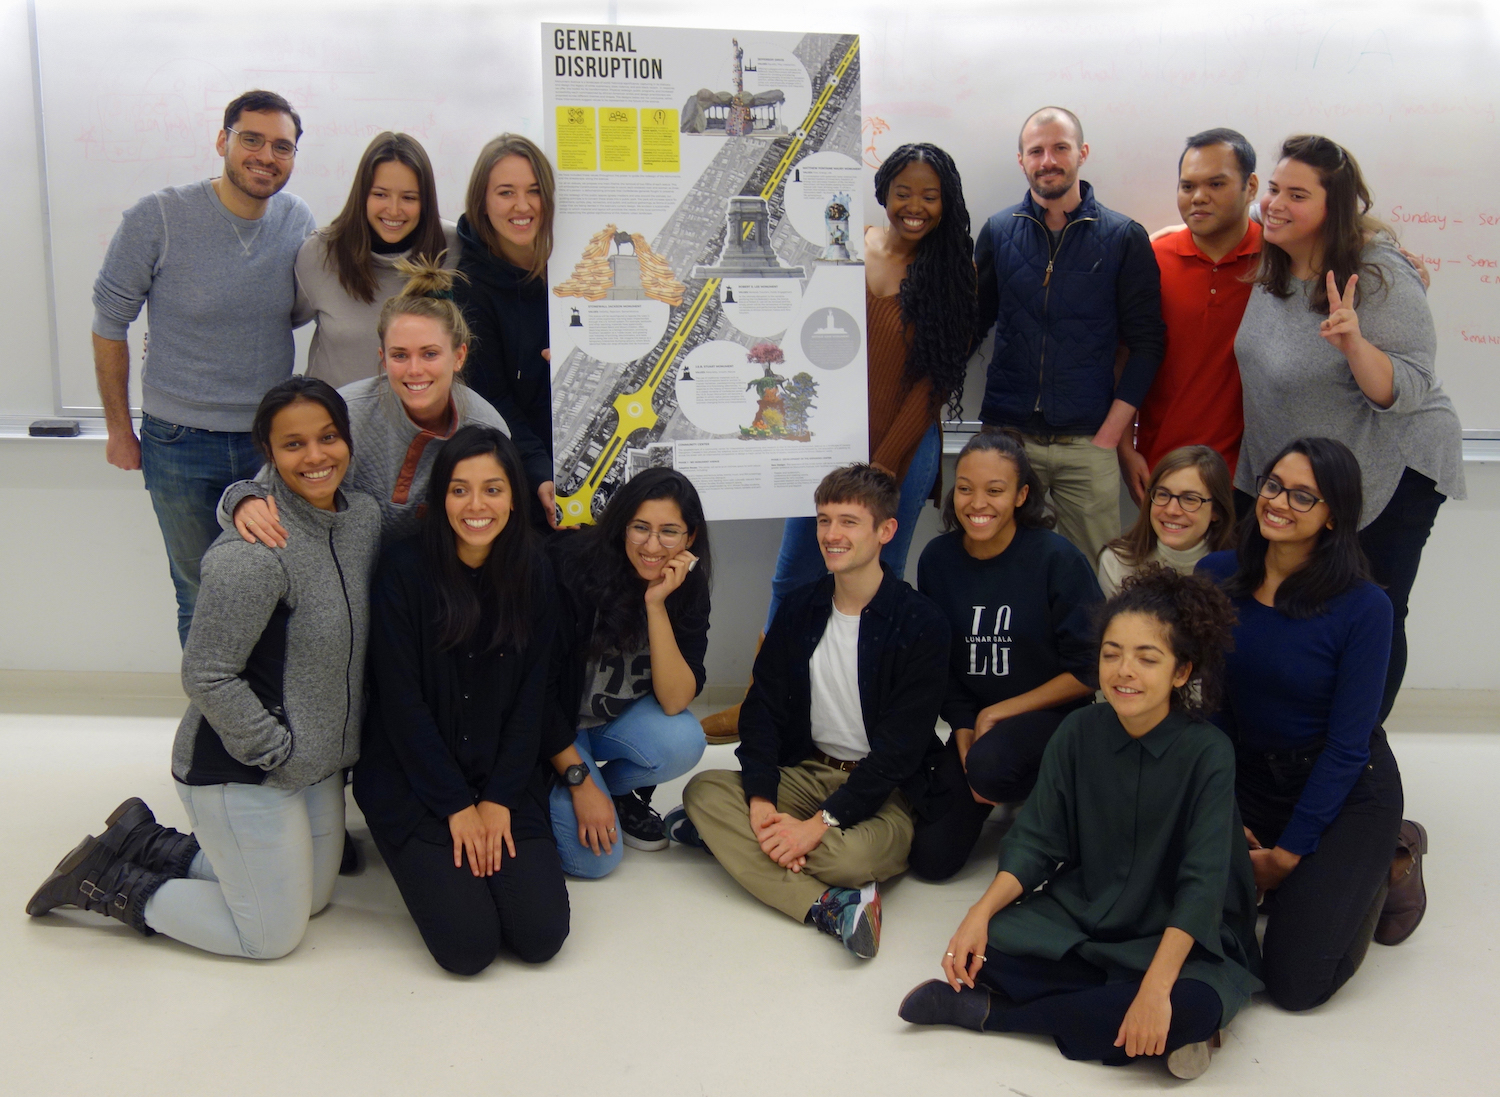 Urban History Lab class displaying the General Disruption poster